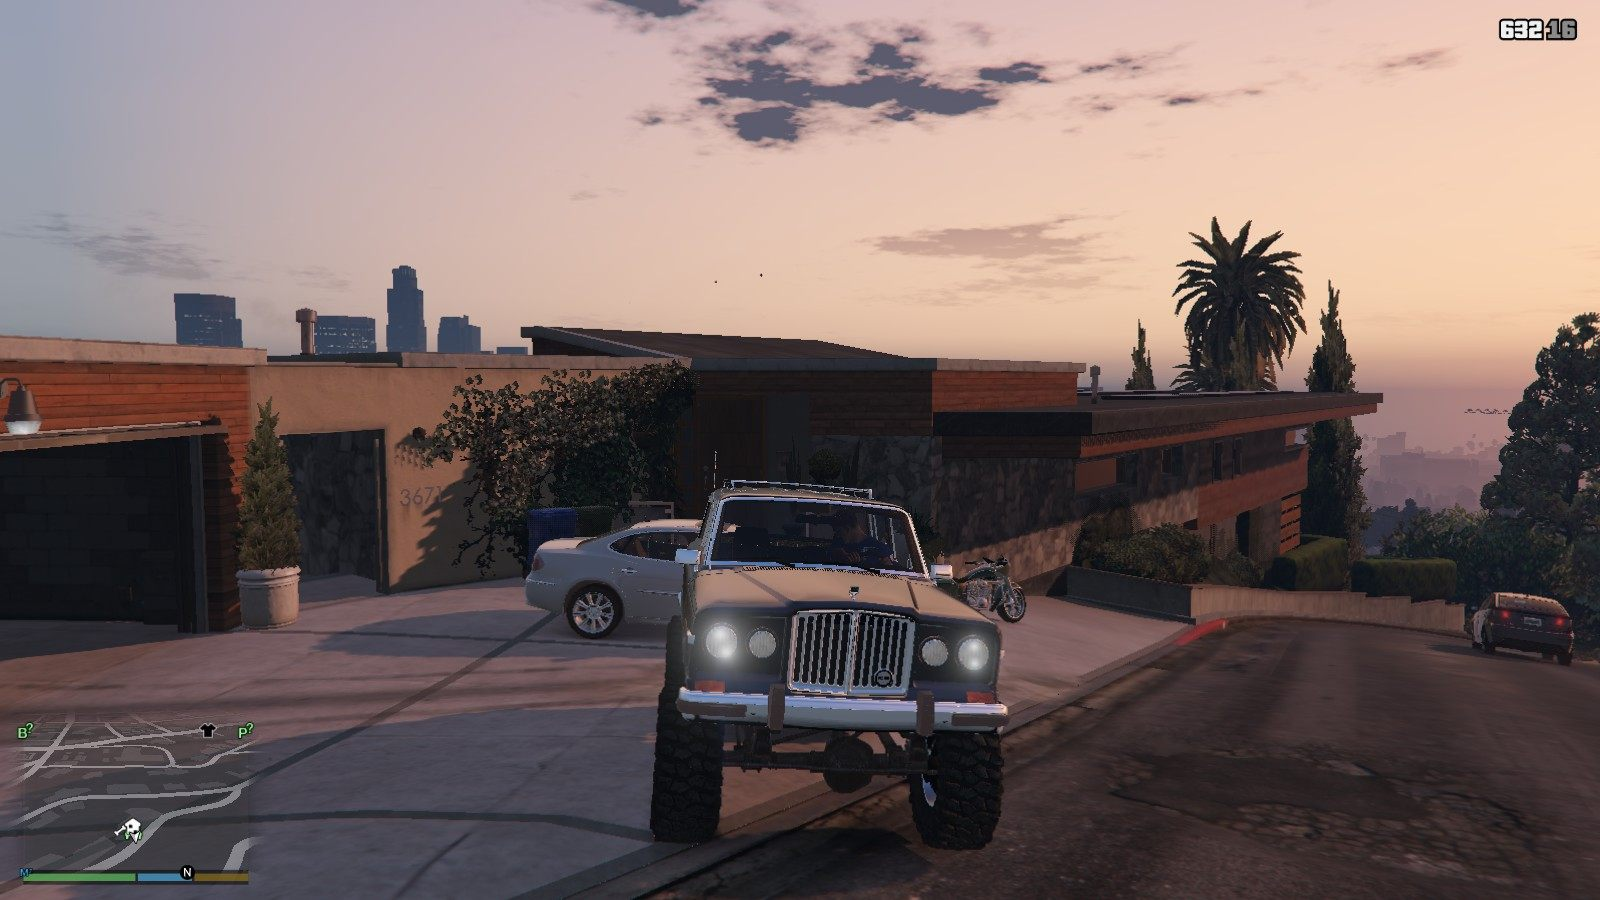 1990 Jeep Grand Wagoneer GTA5 Mods (2)